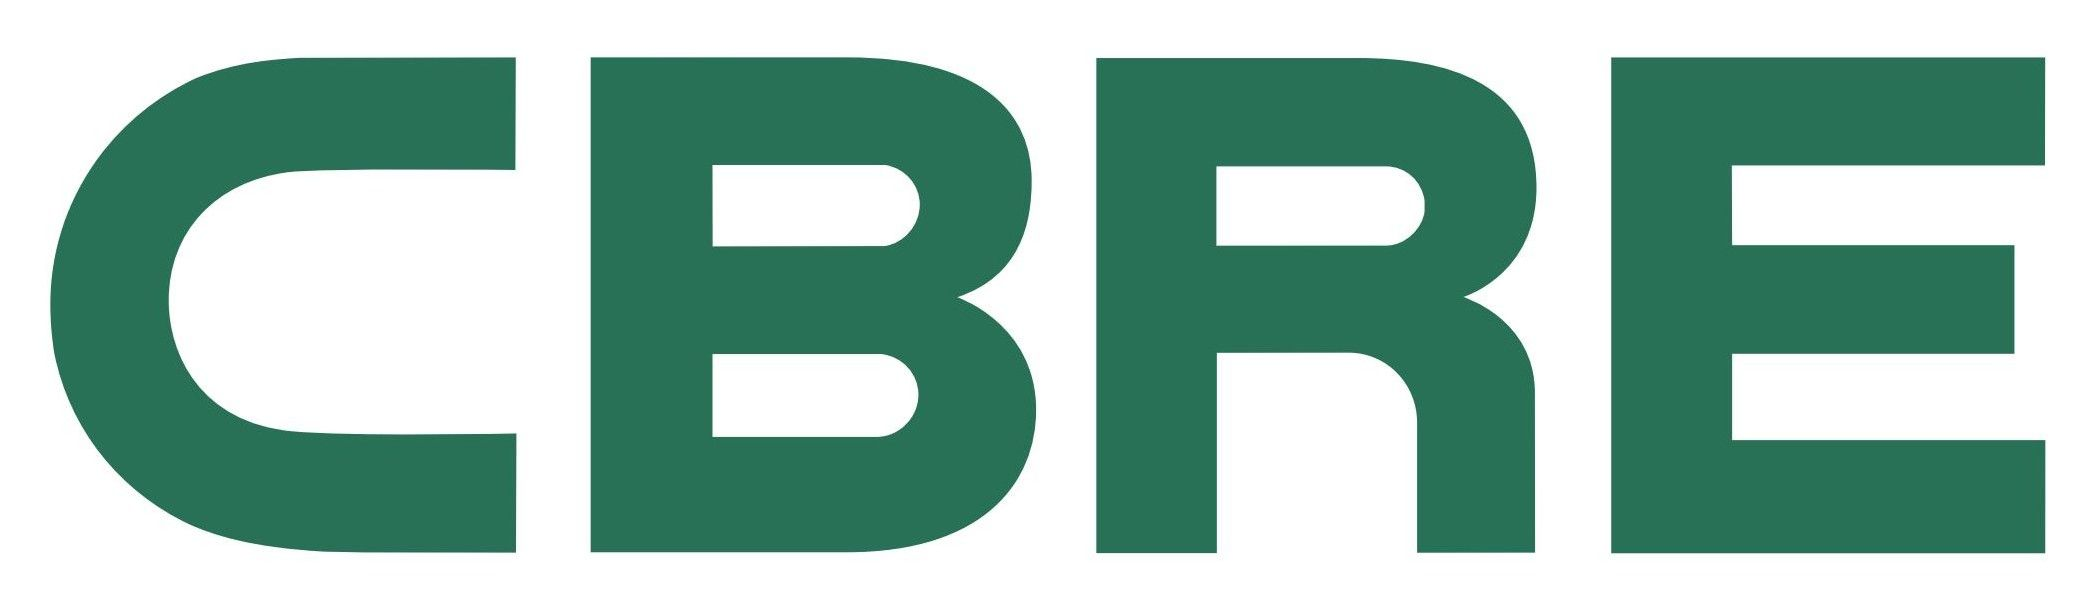 CBRE Group Logo [EPS File] Vector EPS Free Download, Logo, Icons, Brand Emblems